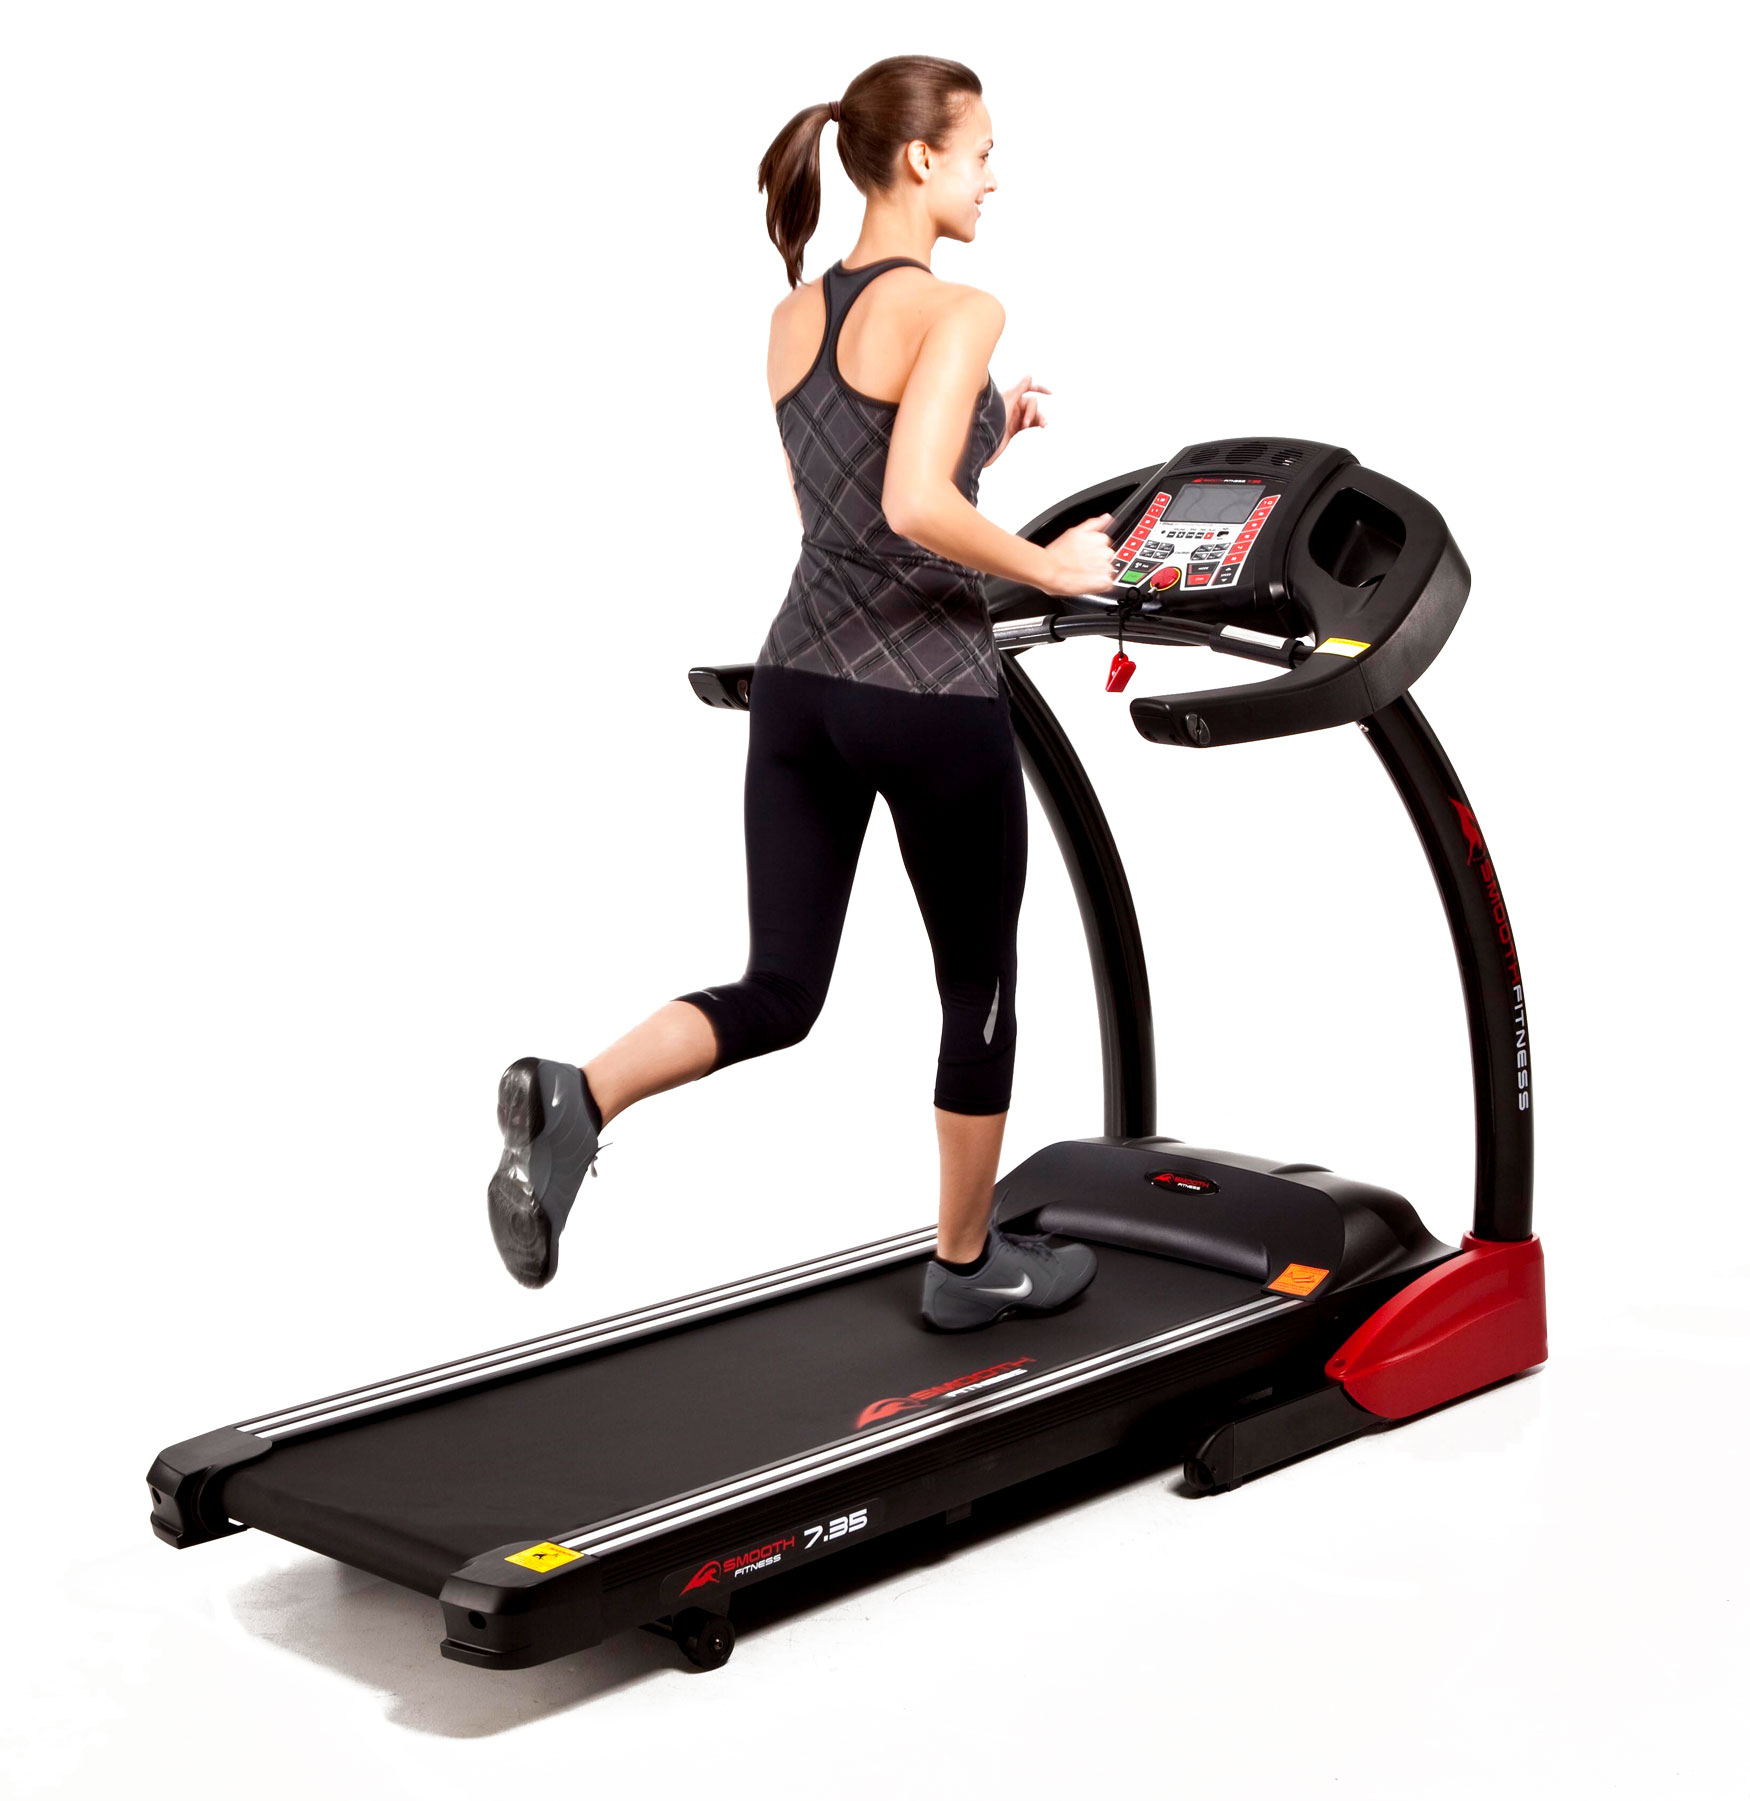 treadmill delivery and assembly service